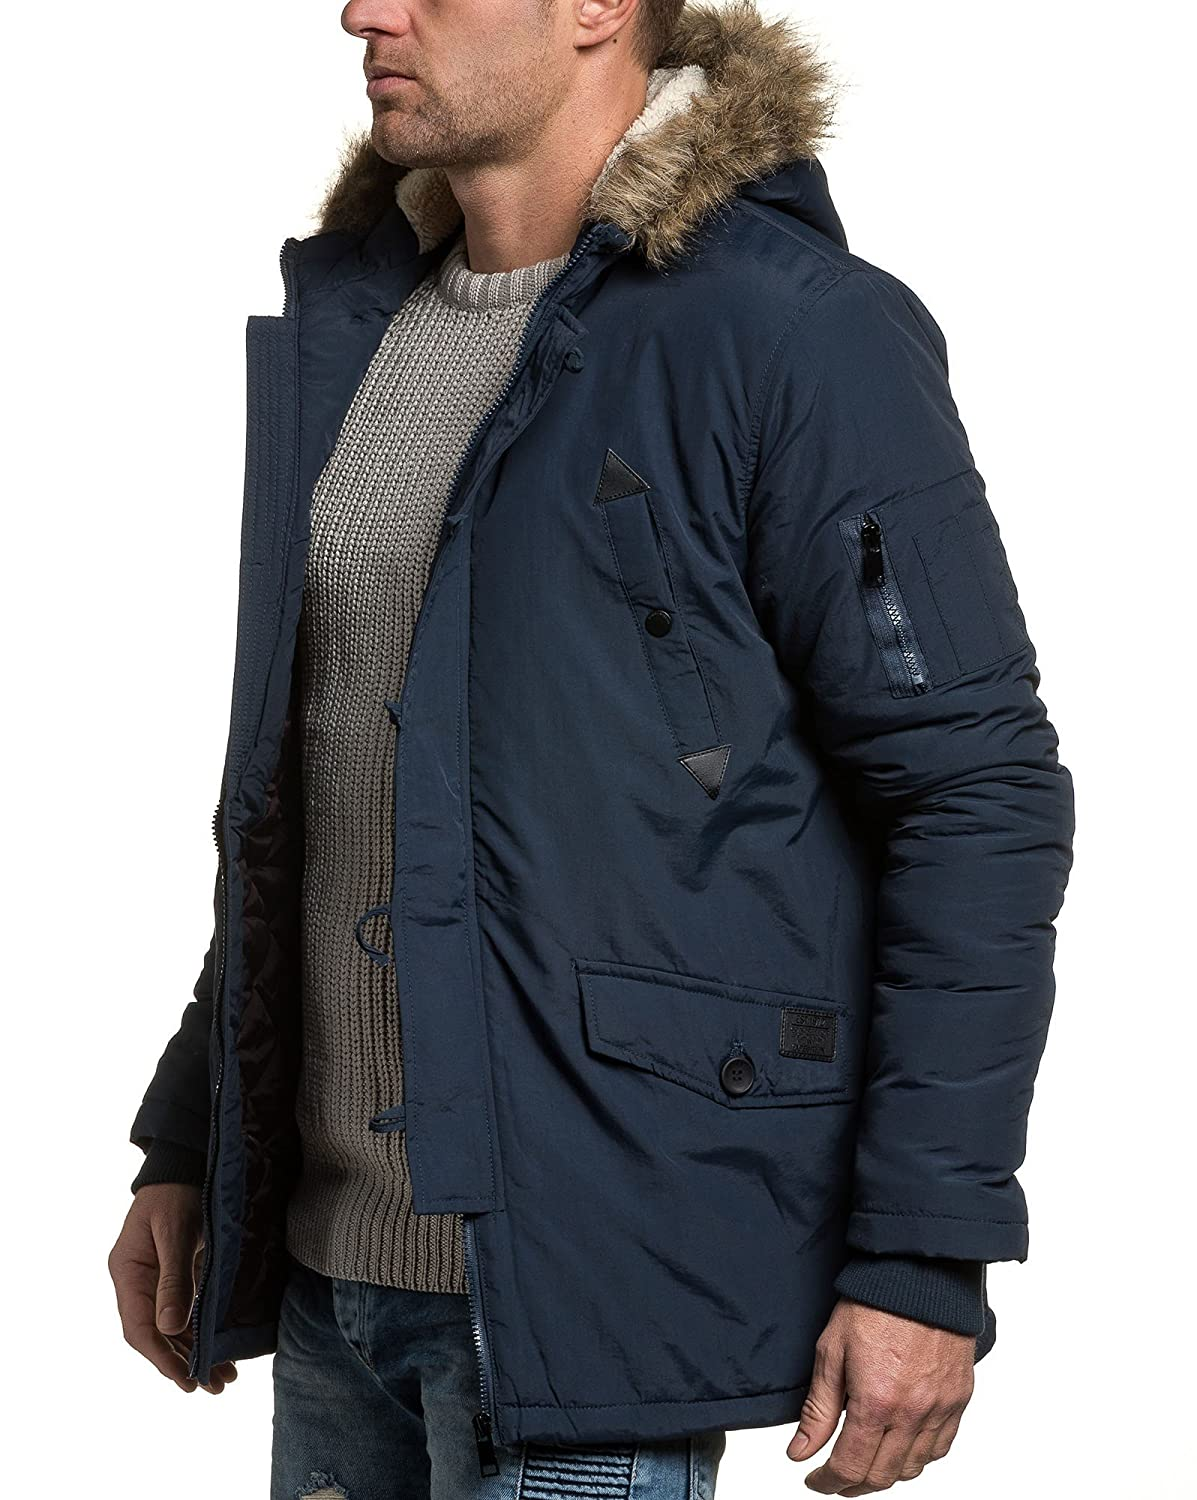 BLZ jeans - man blue parka jacket navy fur hood